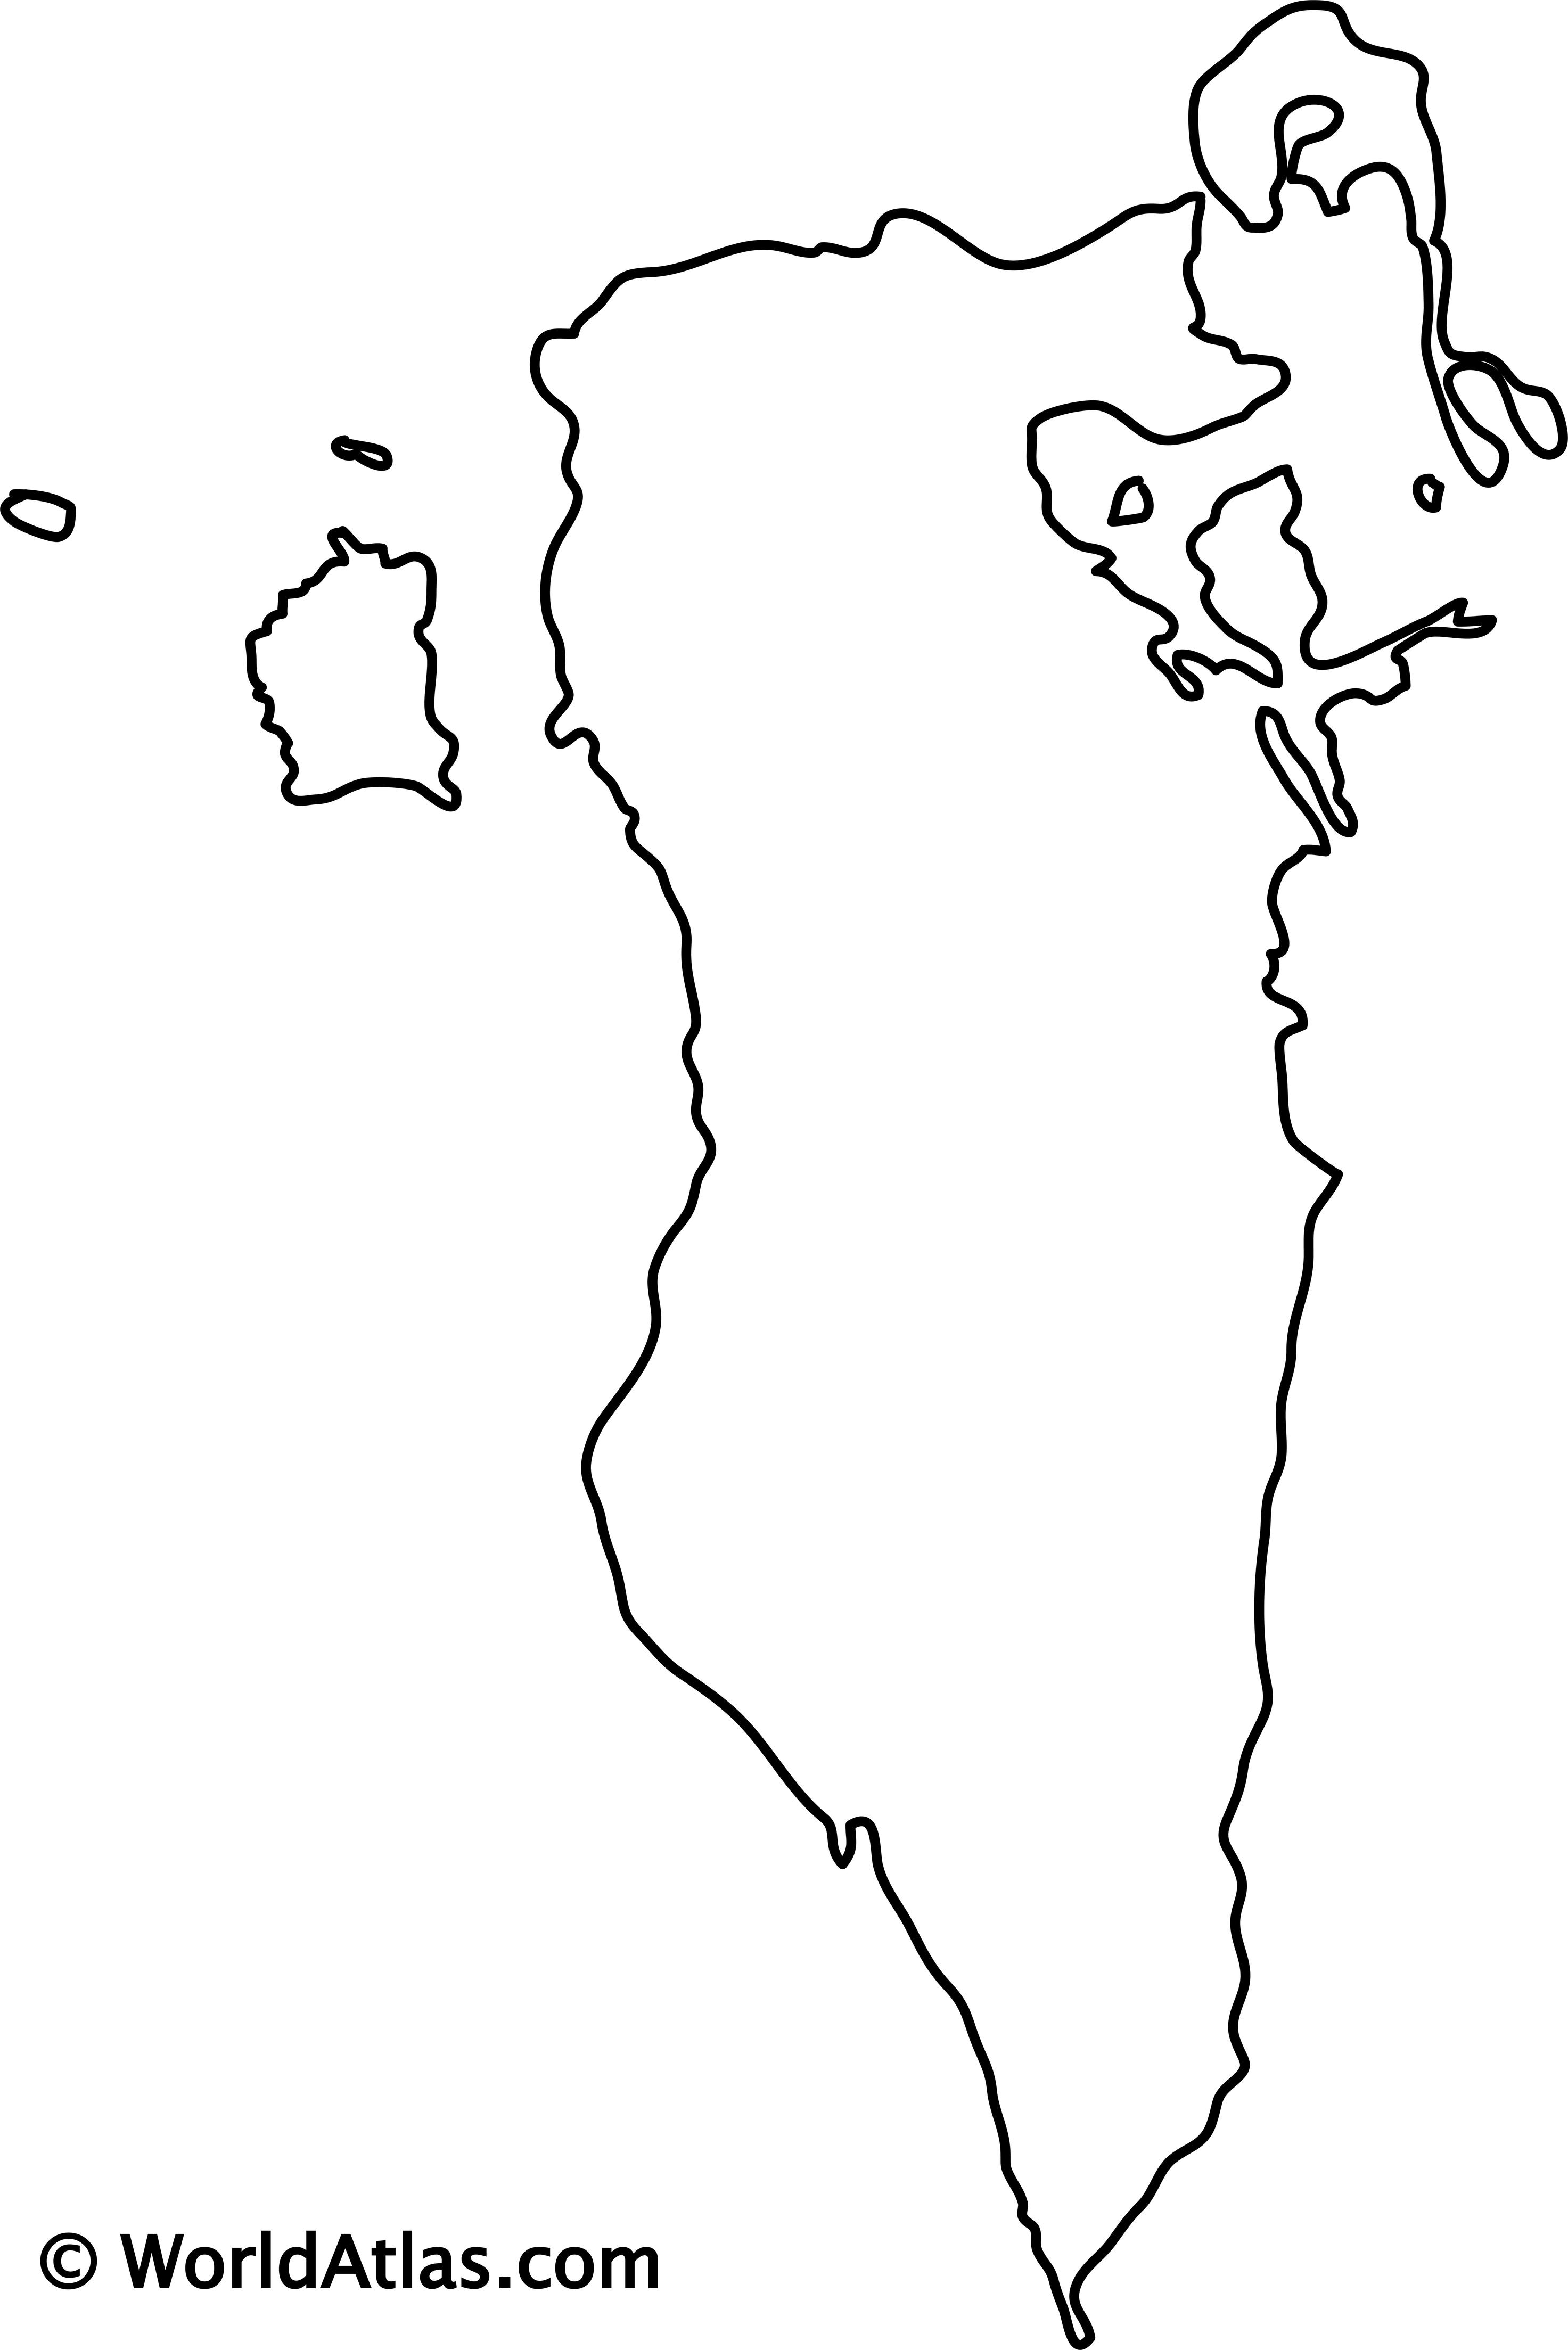 Blank Outline Map of Bahrain